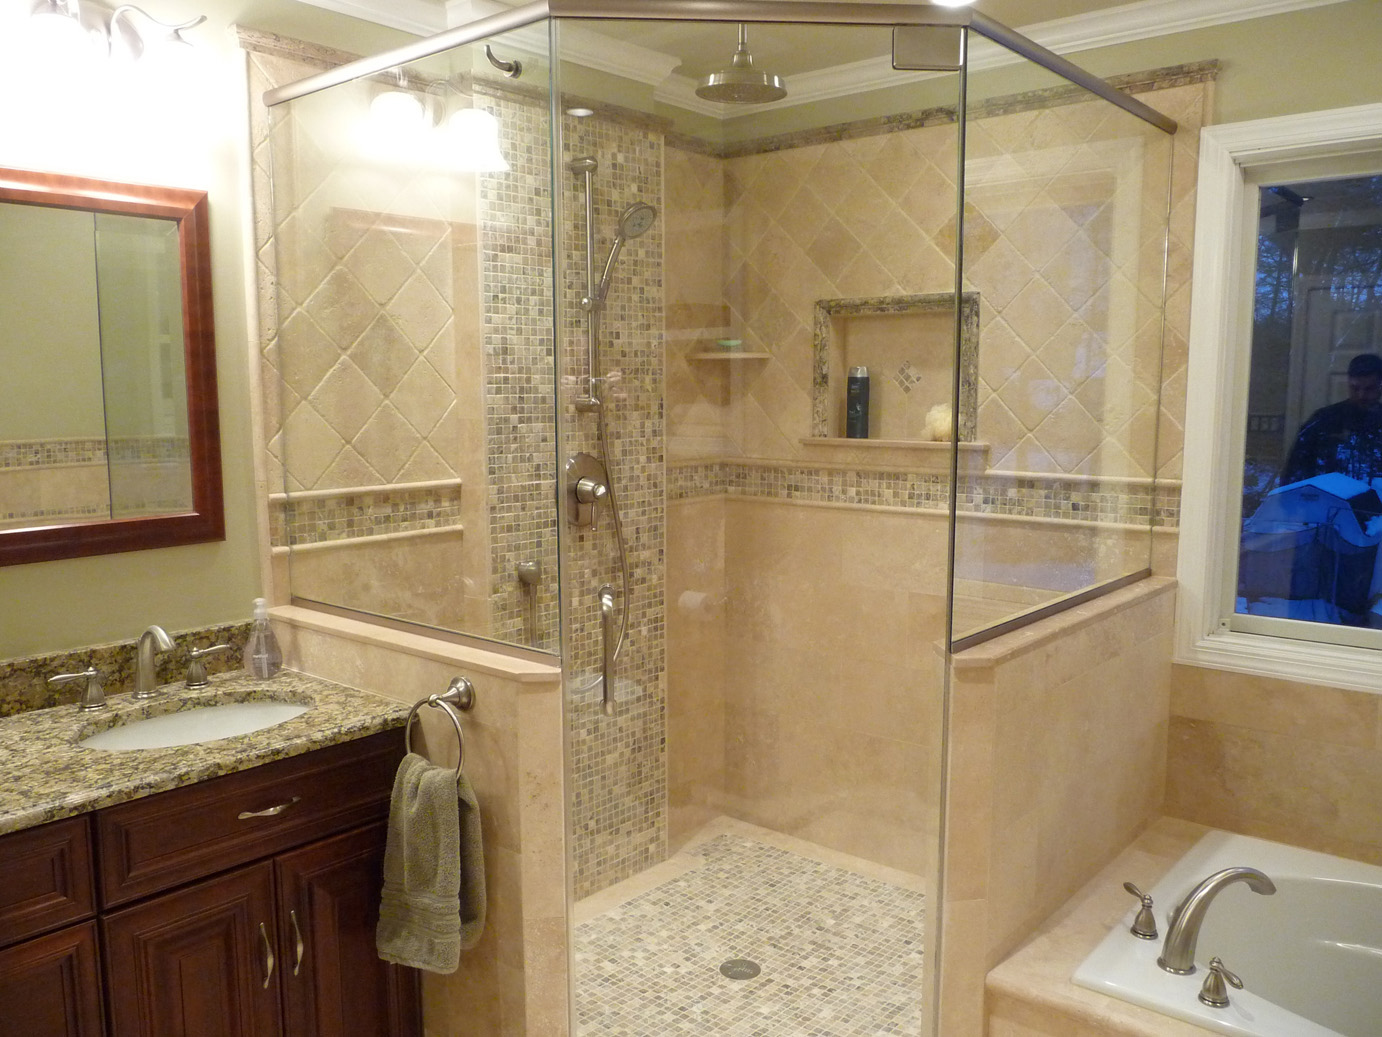 30 cool pictures of tiled showers with gl doors esign Houzz Guest Bathroom Design Html on master bathrooms houzz, guest bathrooms pinterest, small bathrooms houzz, gray bathrooms houzz, guest bathrooms home, white bathrooms houzz,